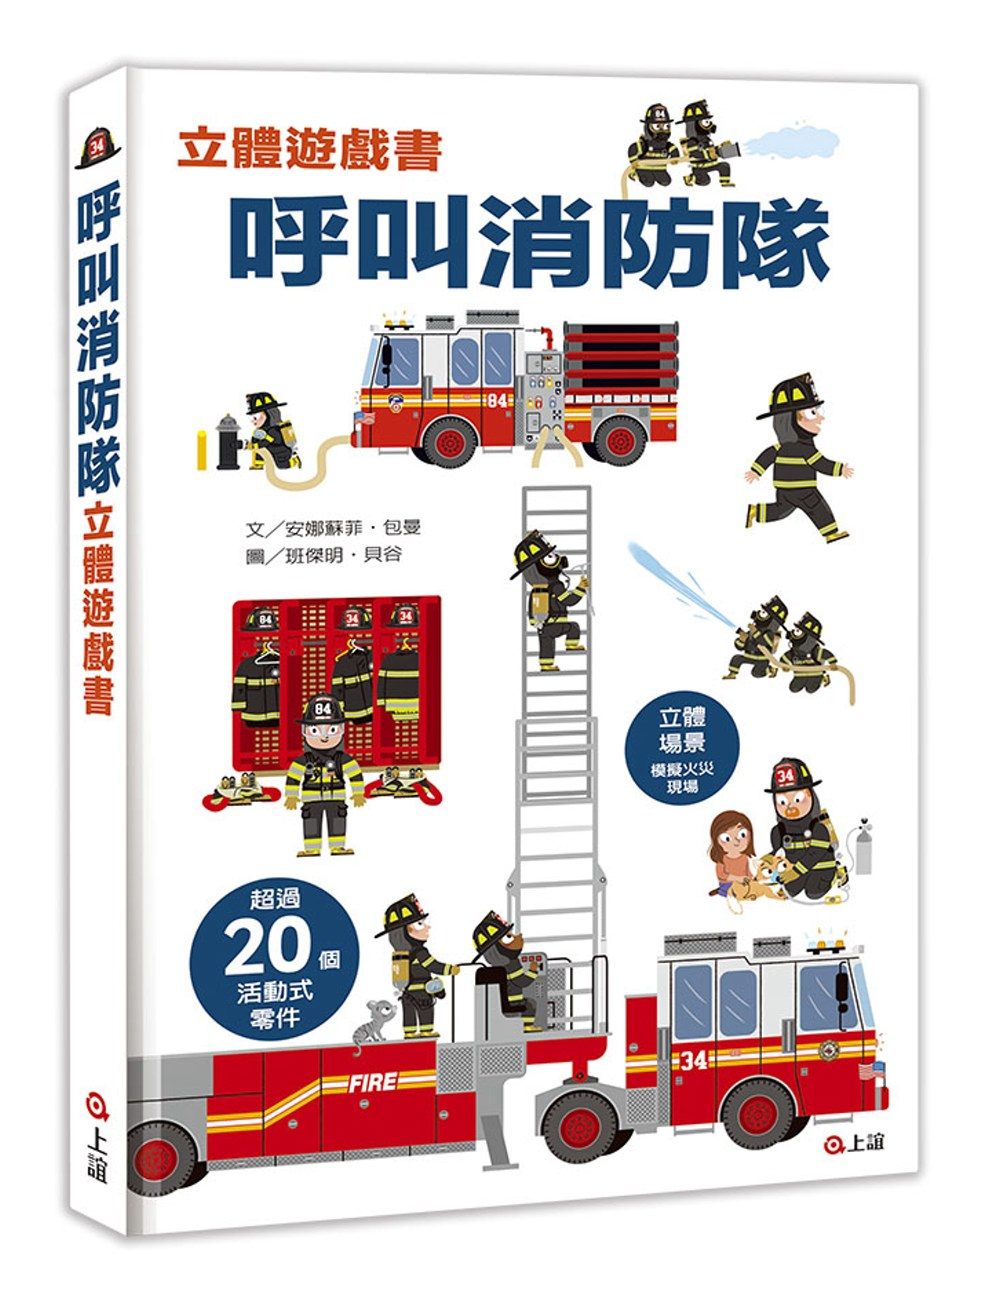 Ultimate Spotlight: Firefighters • 呼叫消防隊立體遊戲書